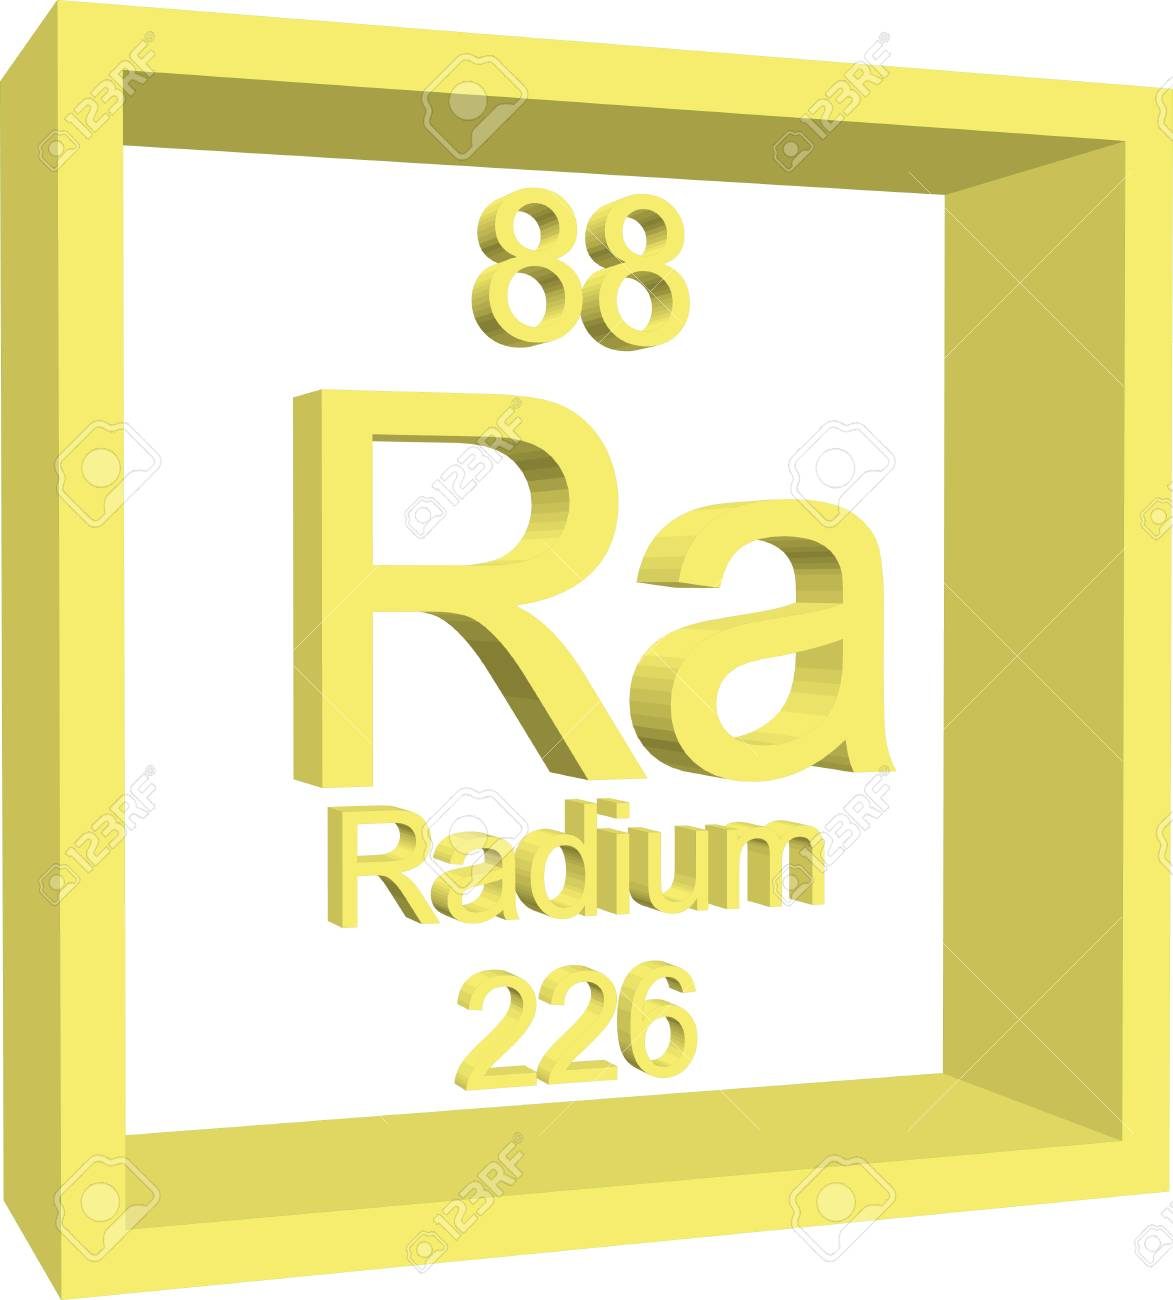 Radium periodic table images periodic table images periodic table of elements radium royalty free cliparts vectors periodic table of elements radium stock vector gamestrikefo Images